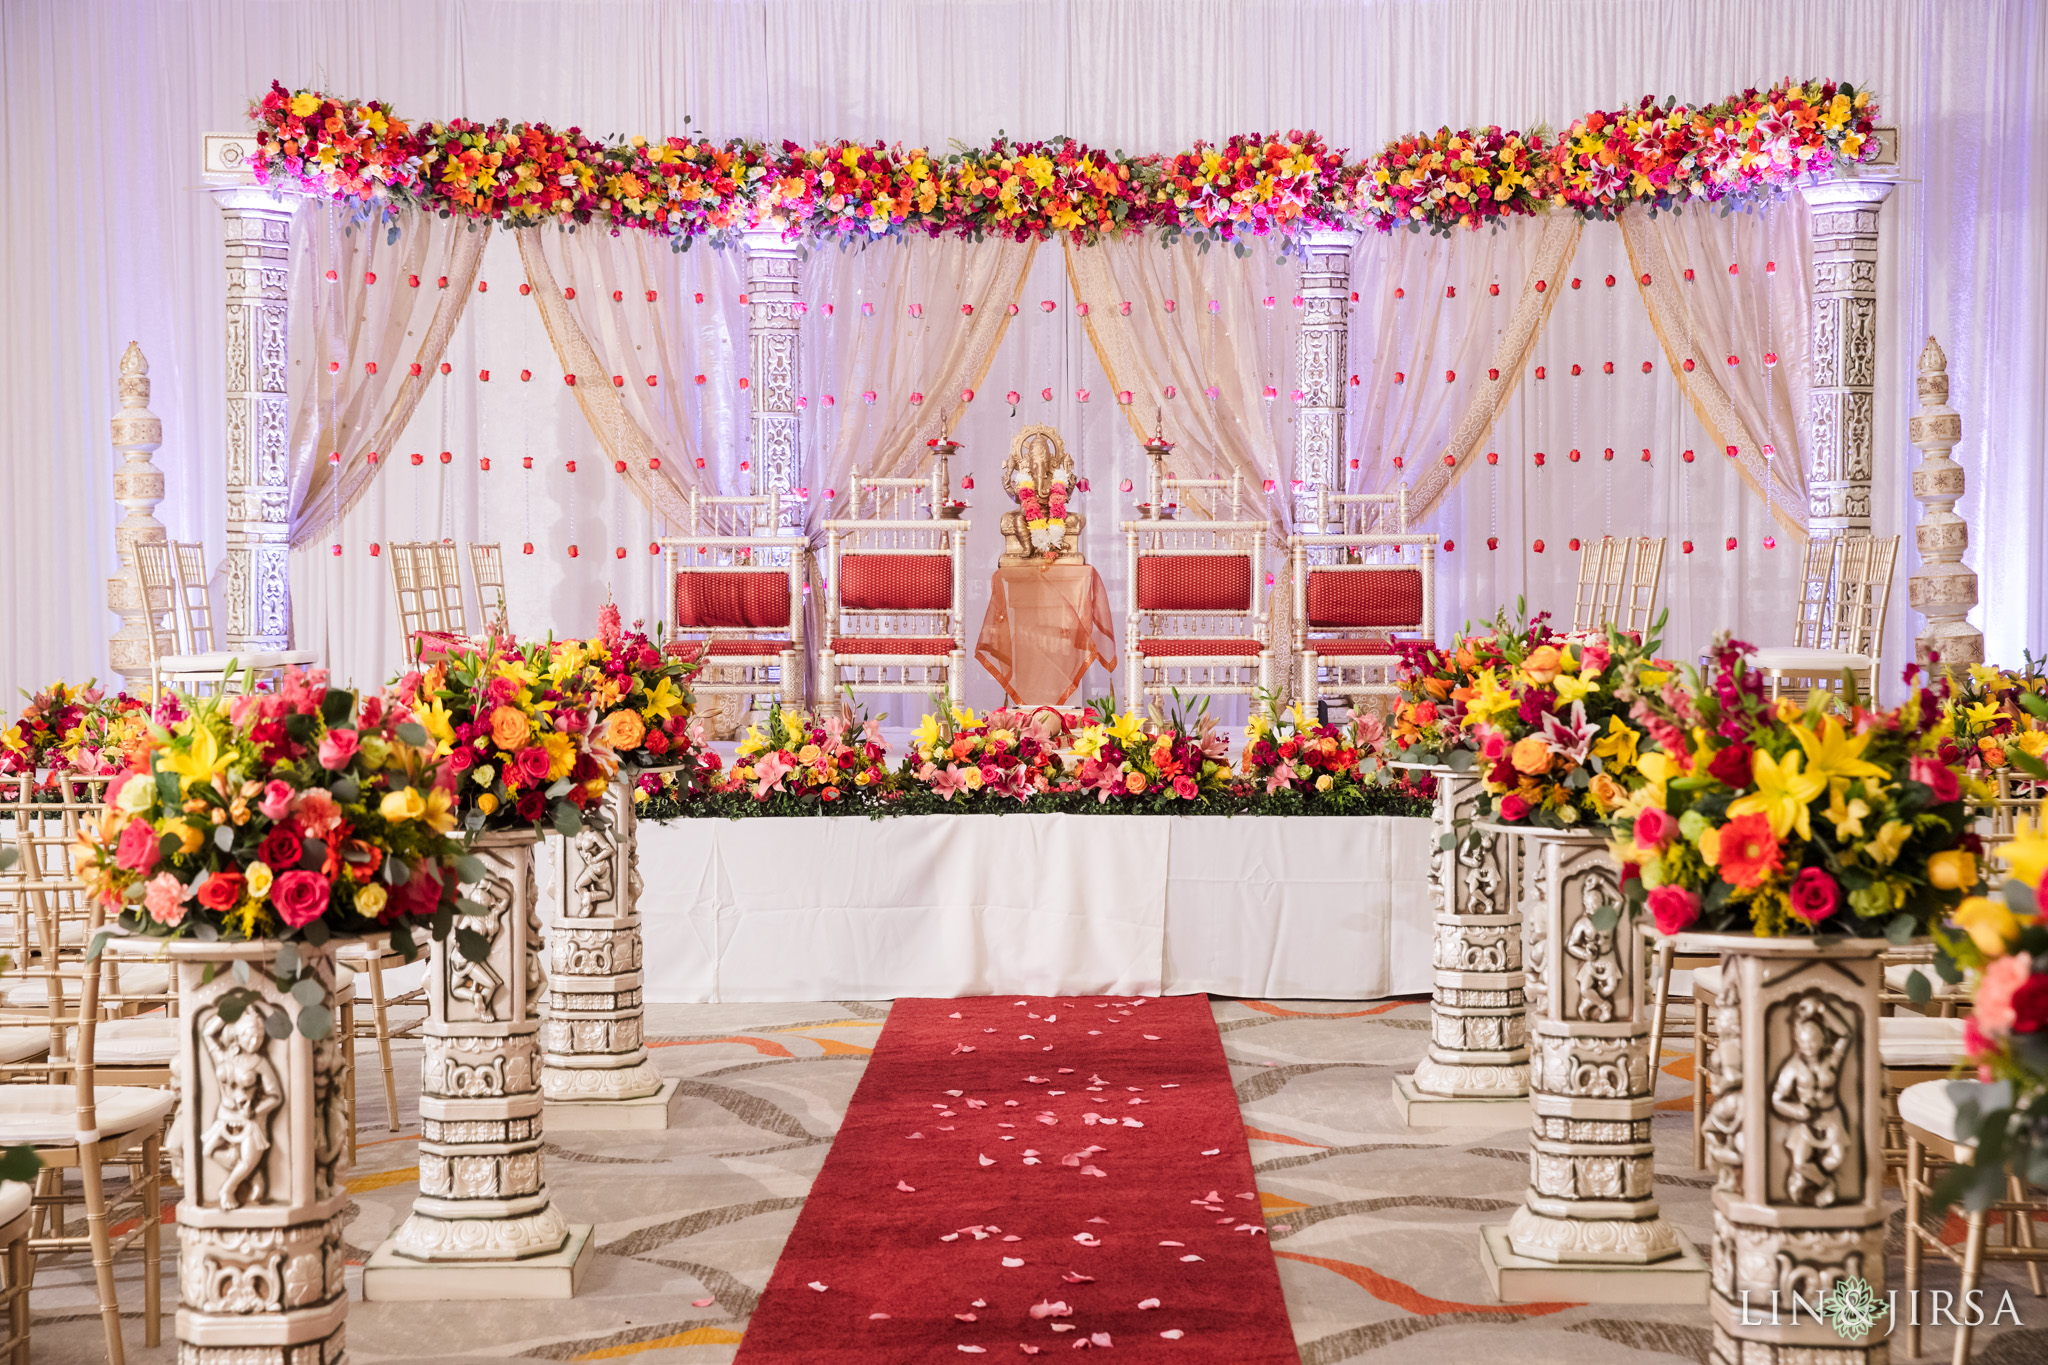 16 Hotel Irvine Multicultural Indian Wedding Photography